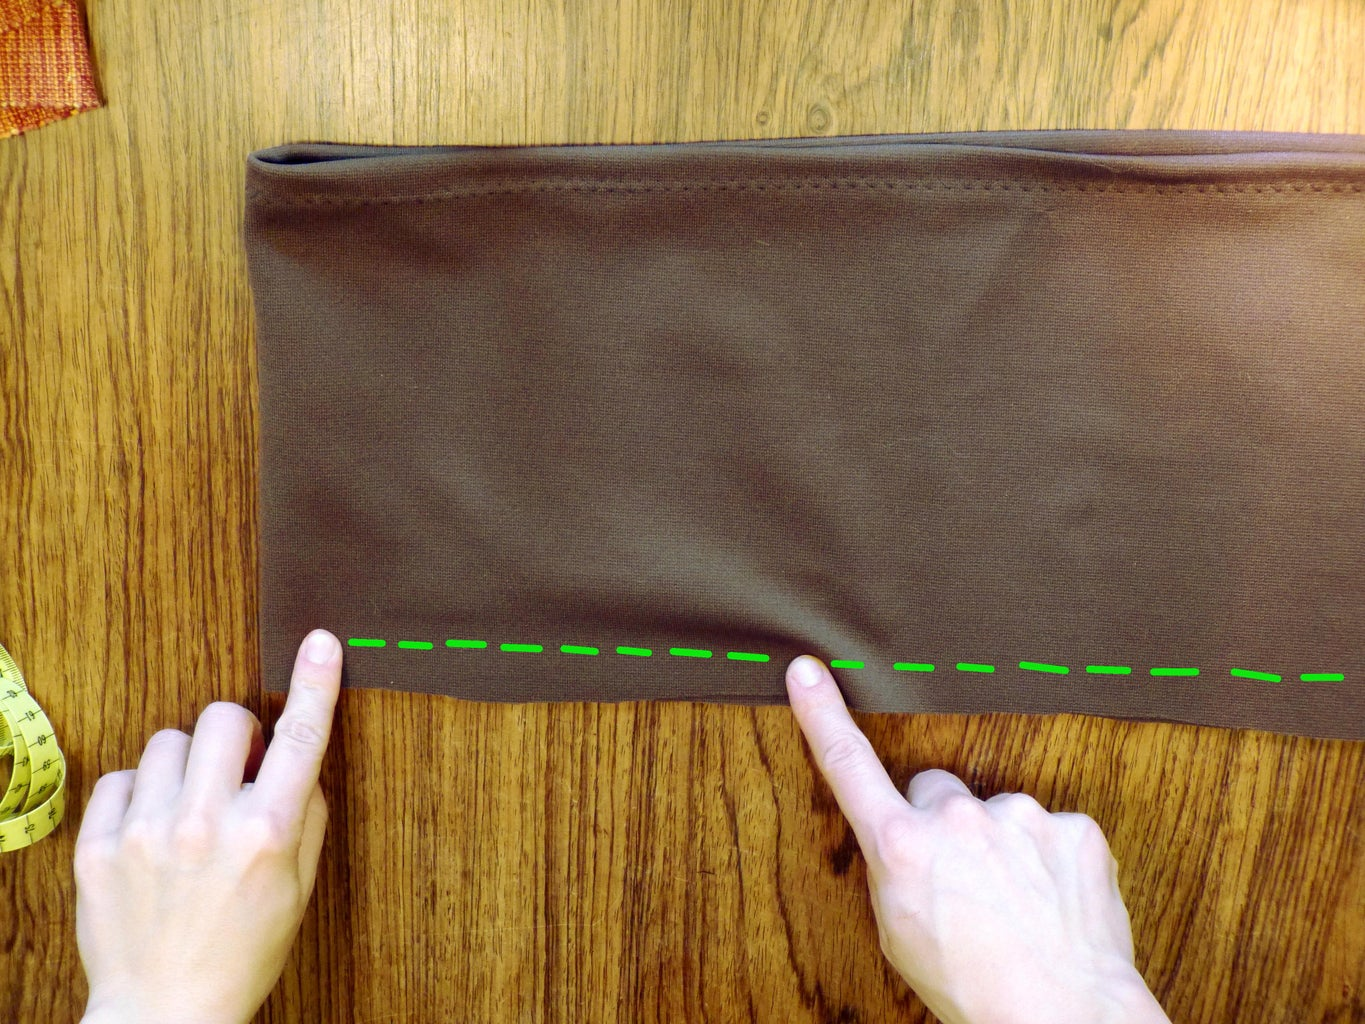 More Snack Bag Sewing...